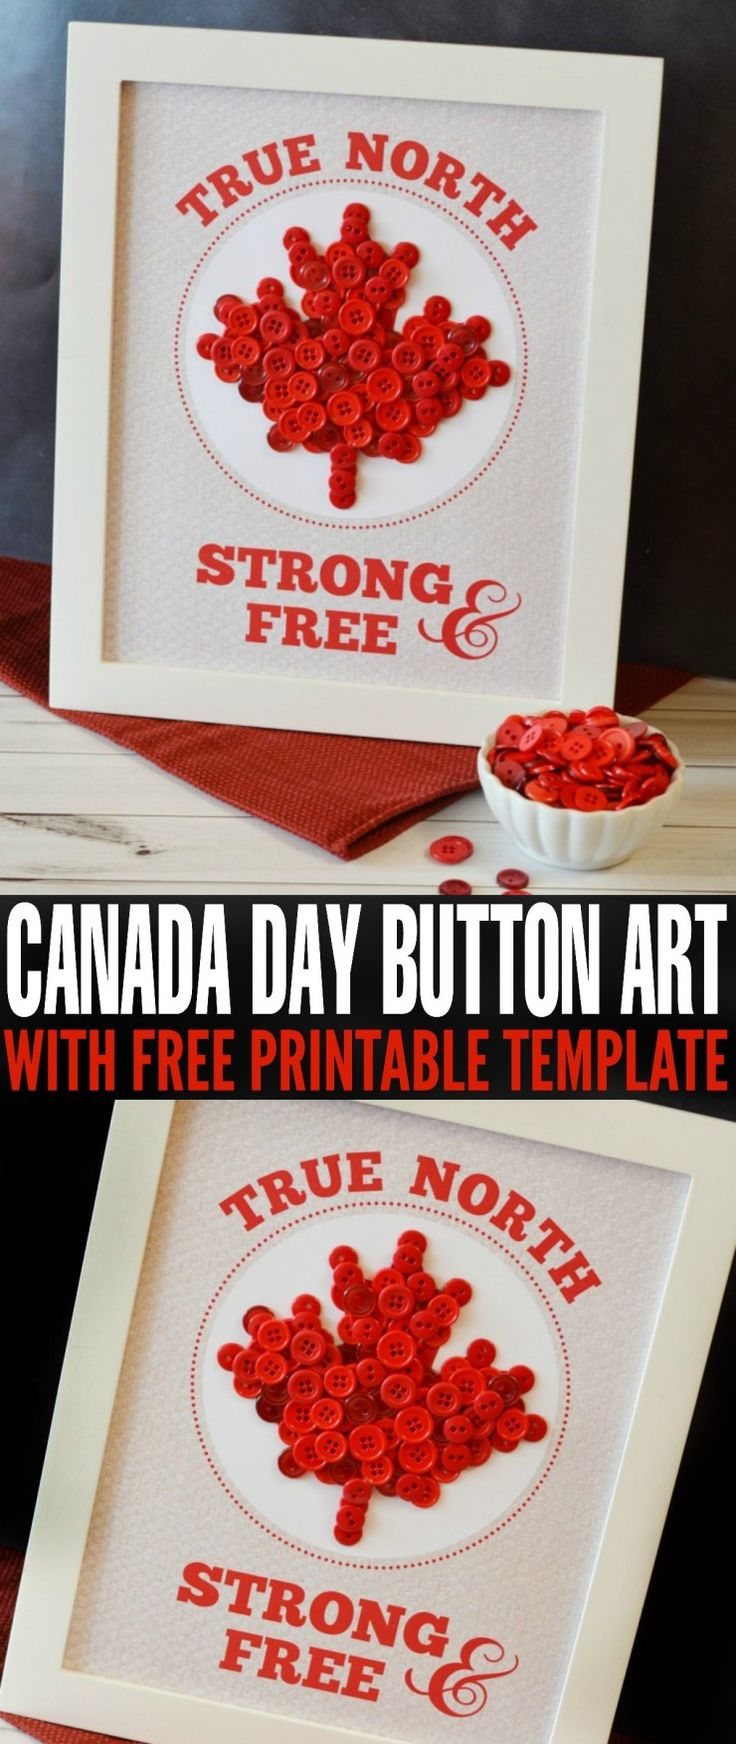 This True North Strong & Free Button Art with Free Printable Template project is the perfect Canada day craft for the whole family.